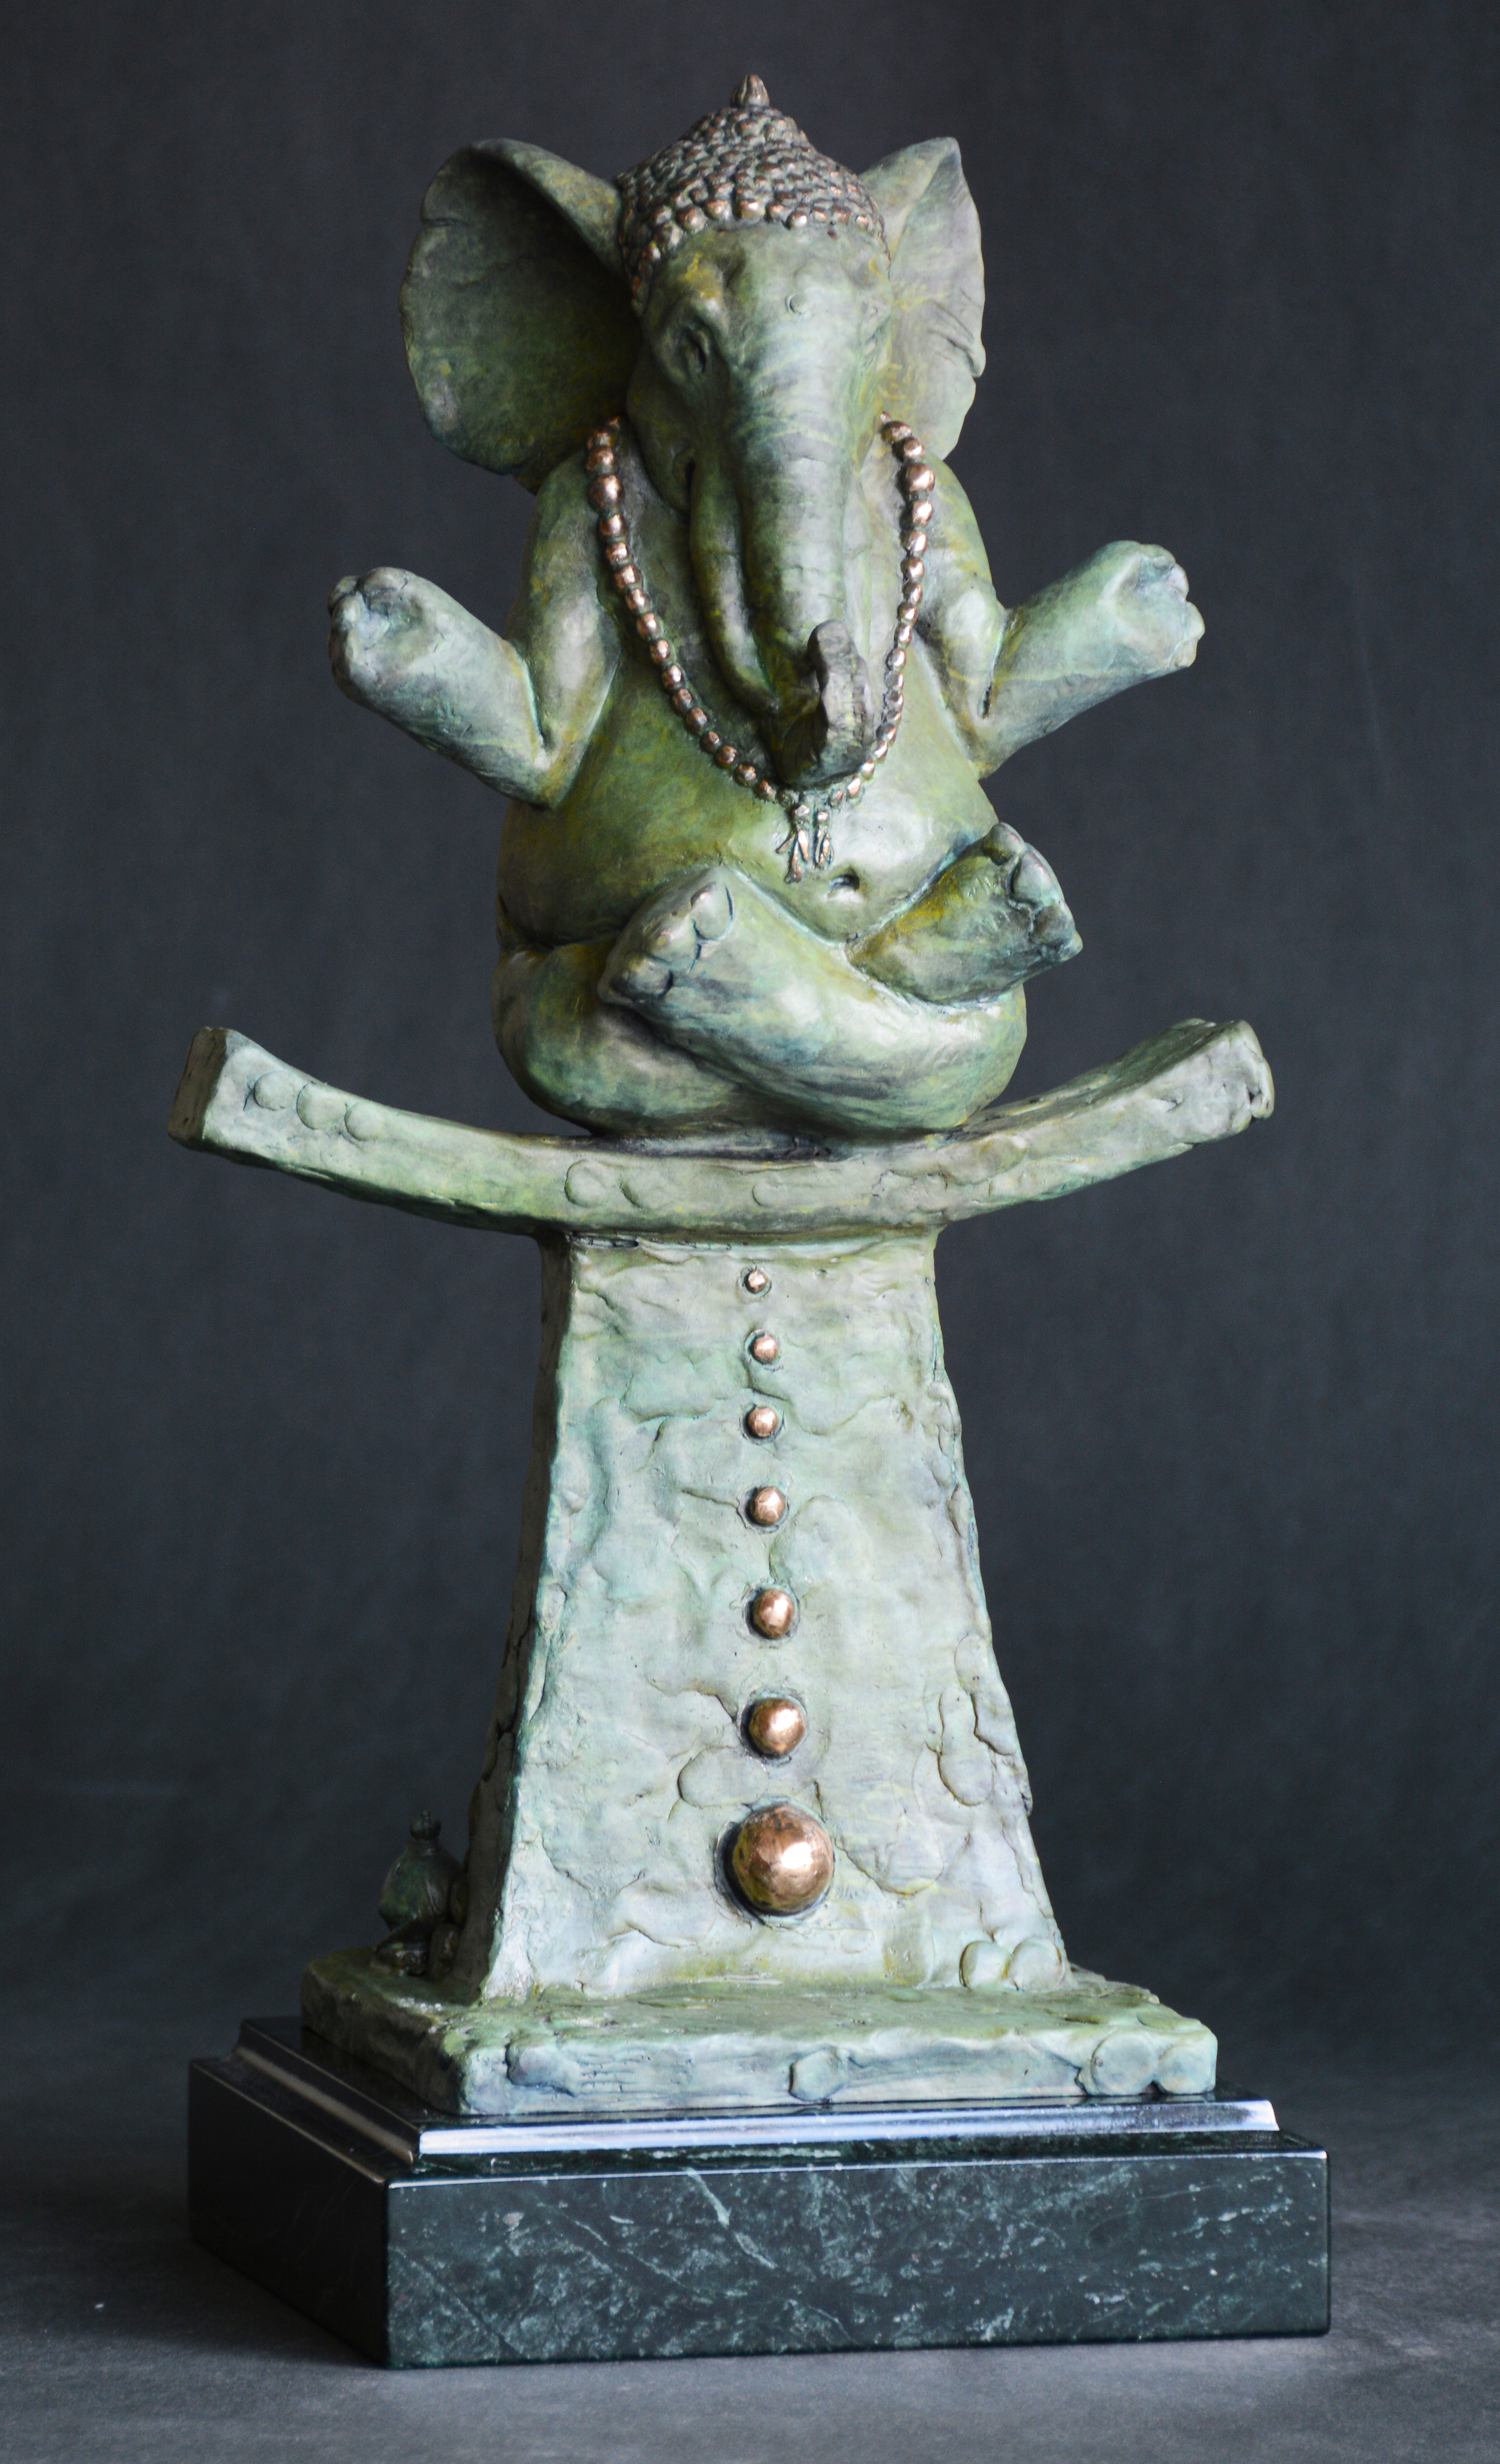 Buddhaphant Bronze Sculpture 2014 17 in